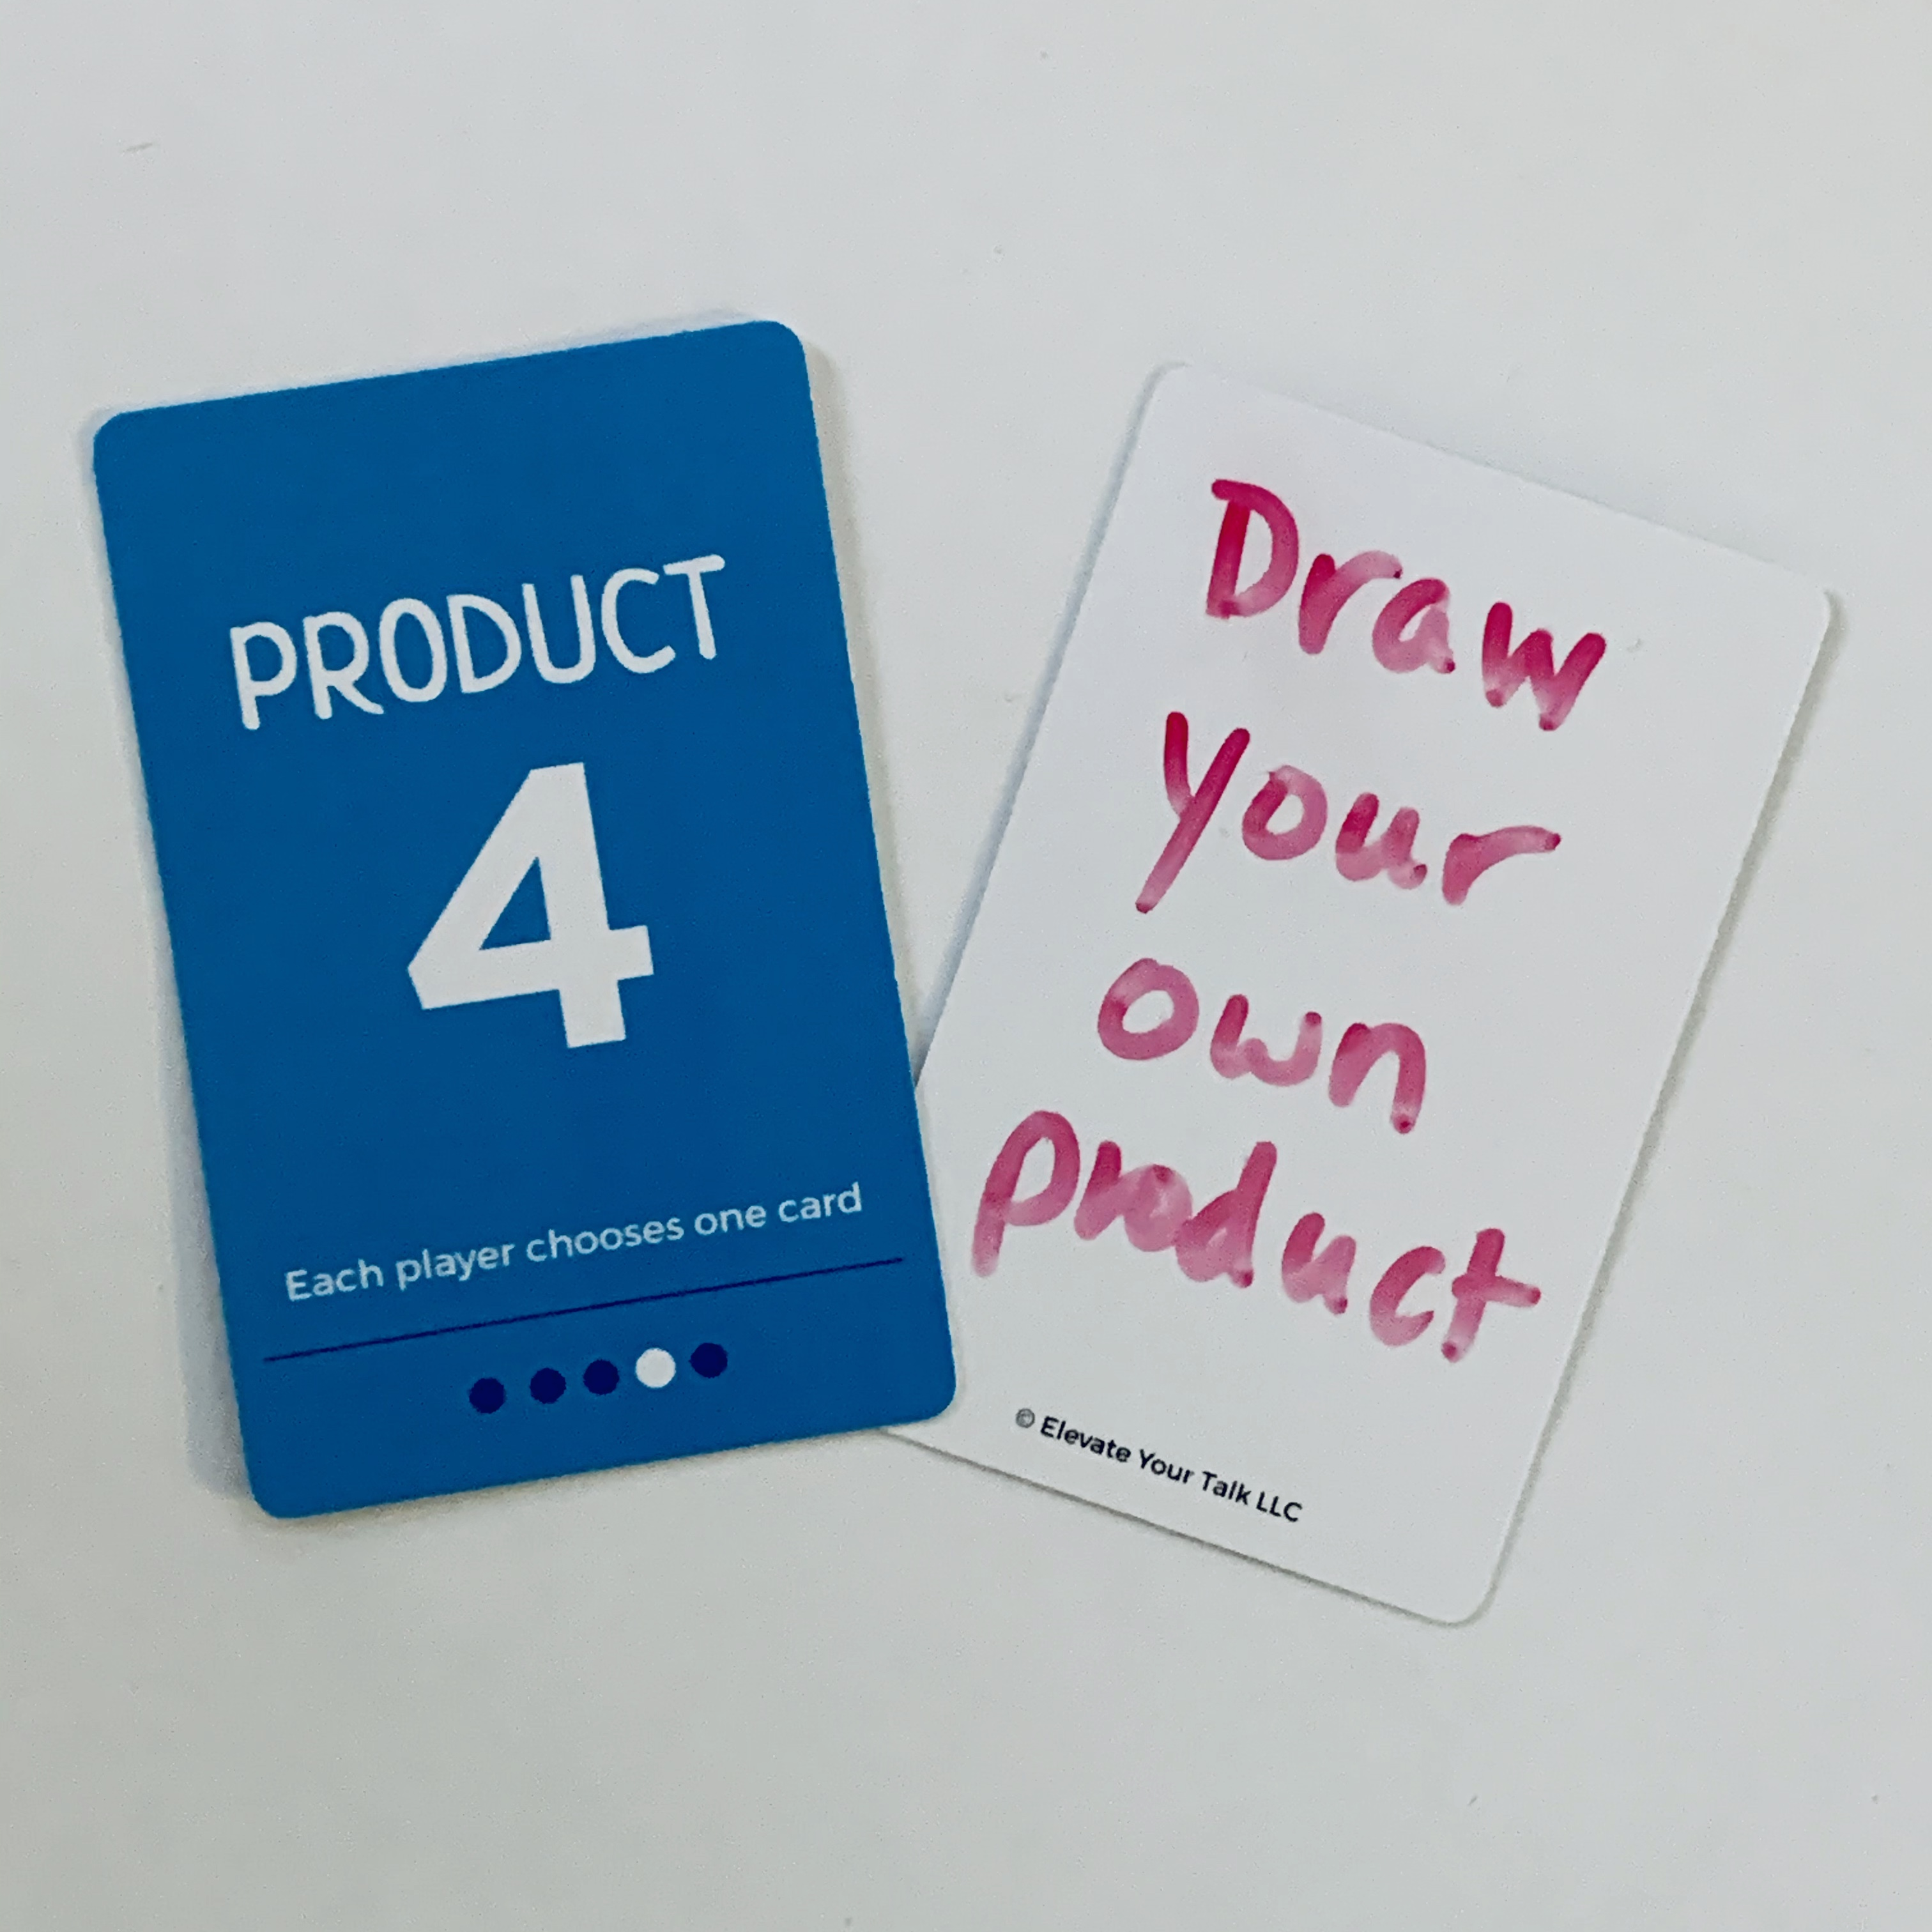 Blank cards are dry-erase marker friendly